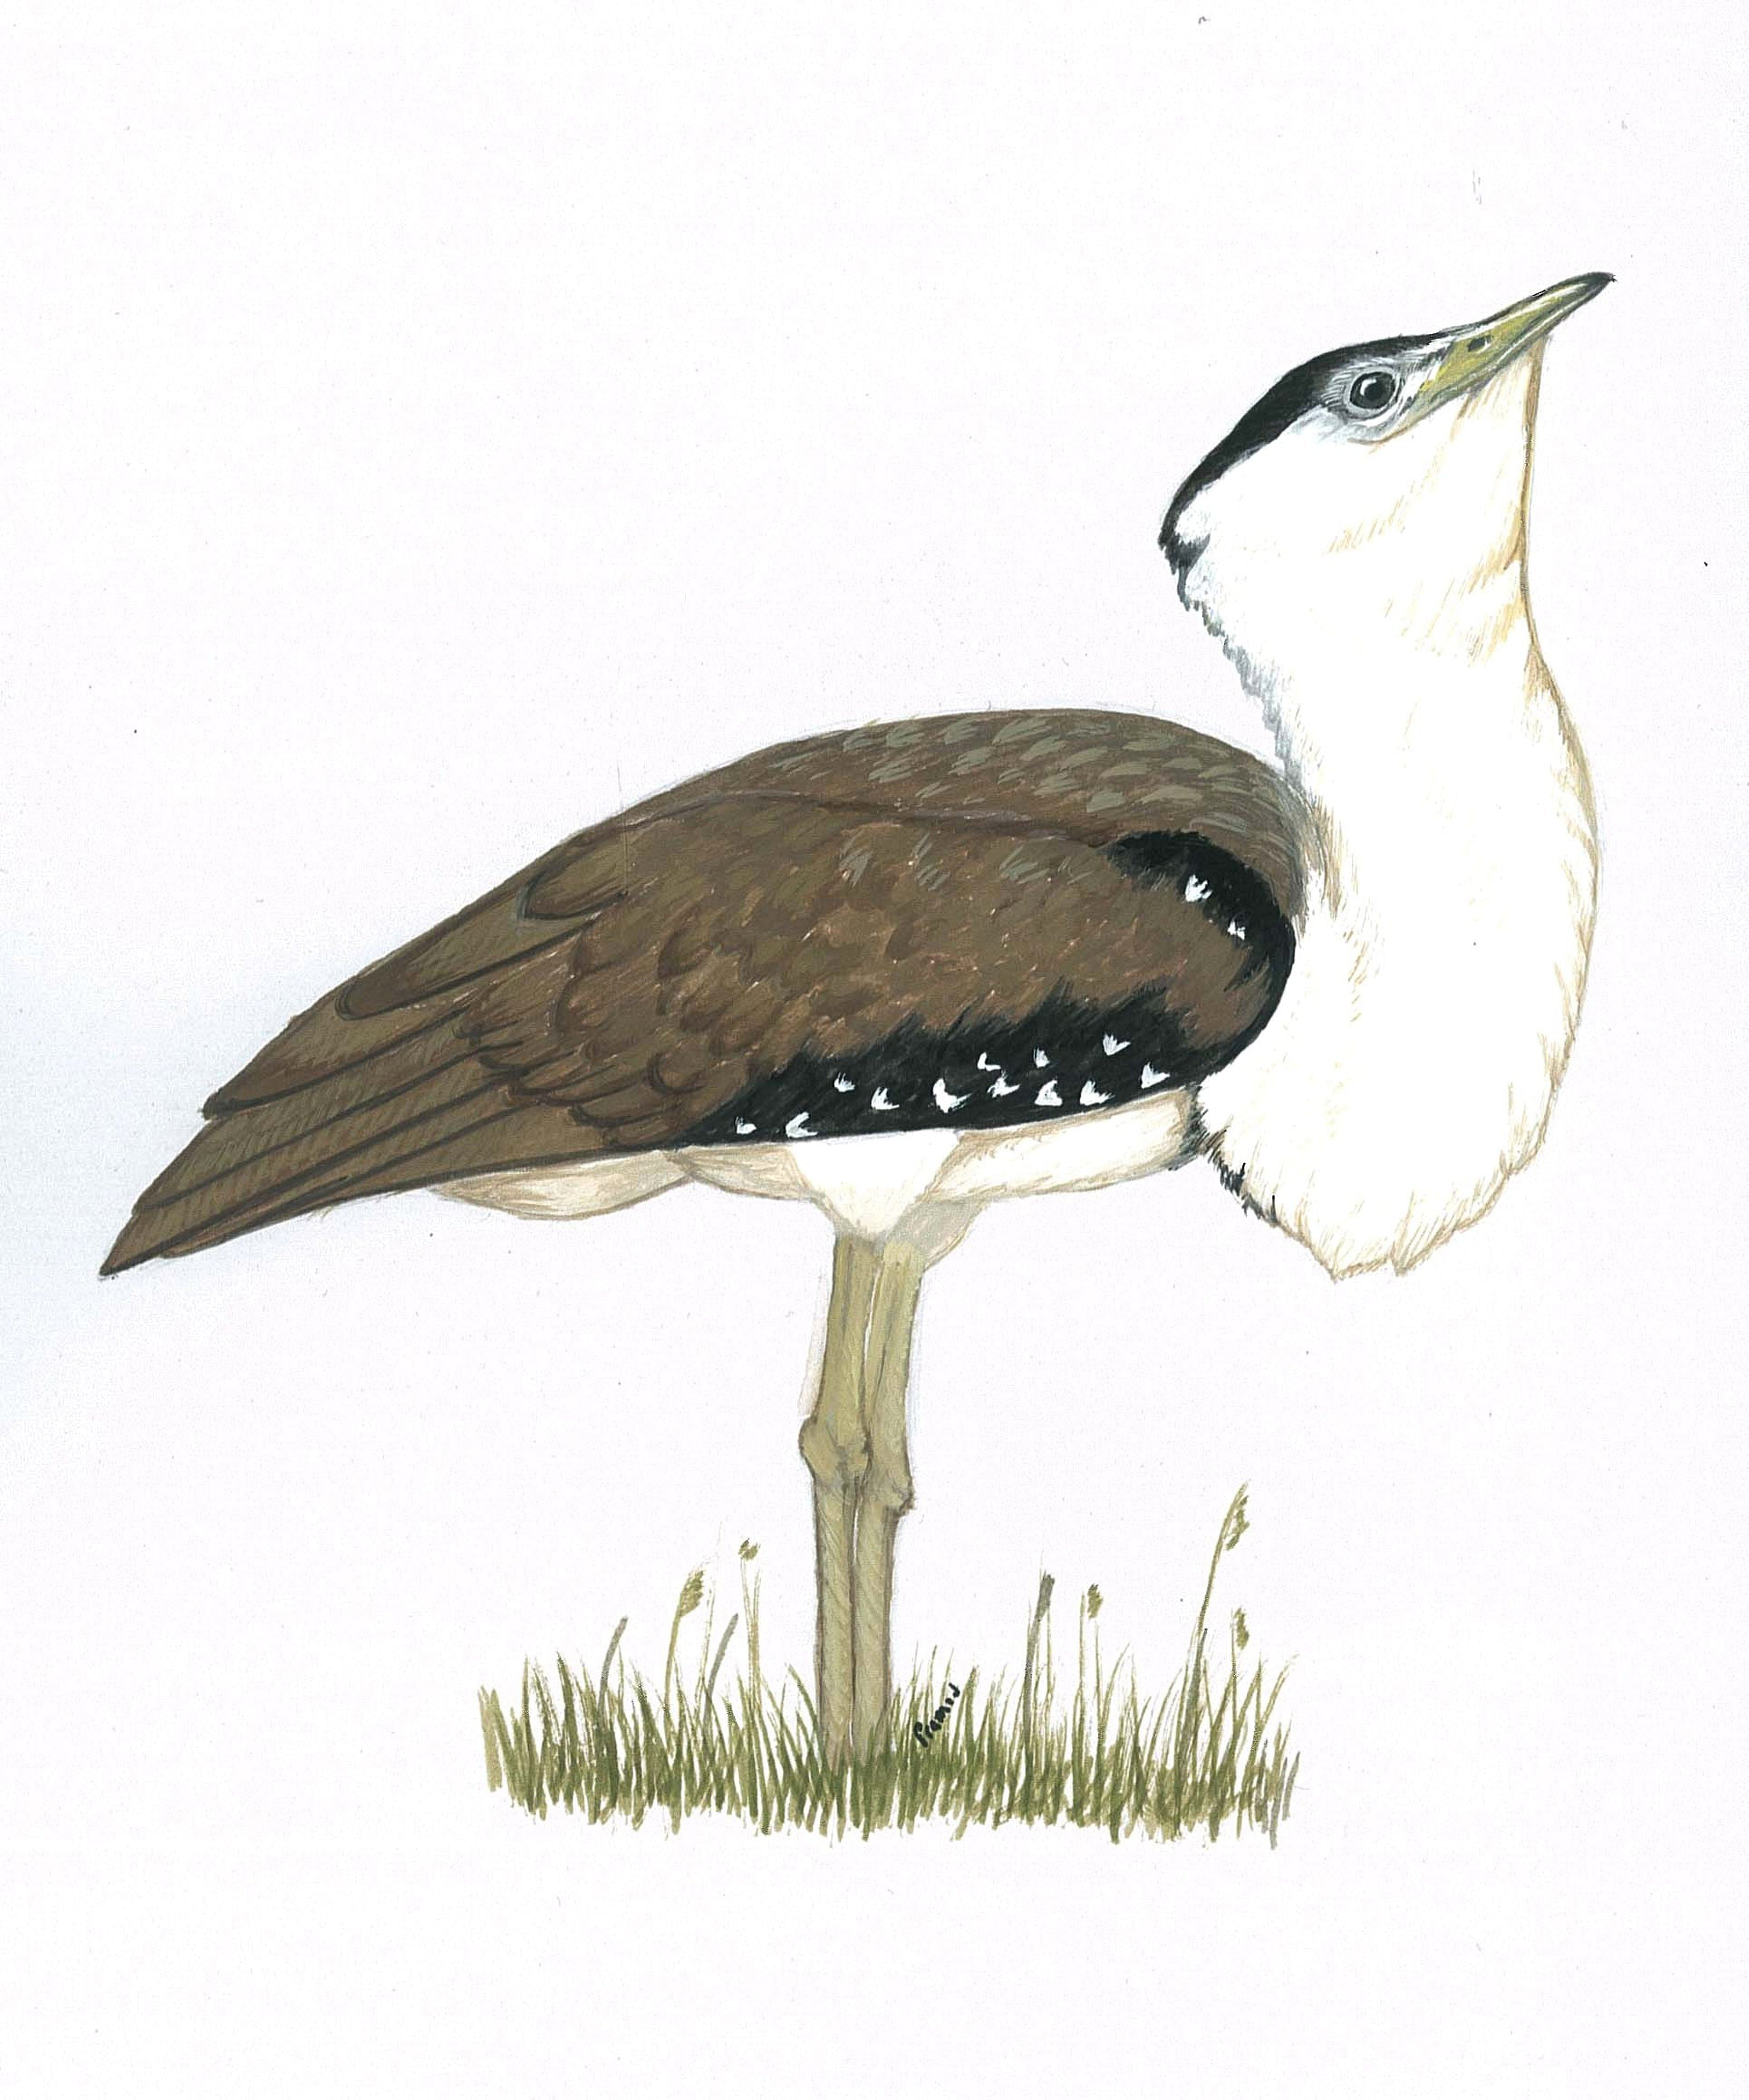 A sketch of the Great Indian Bustard by Dr. Patil